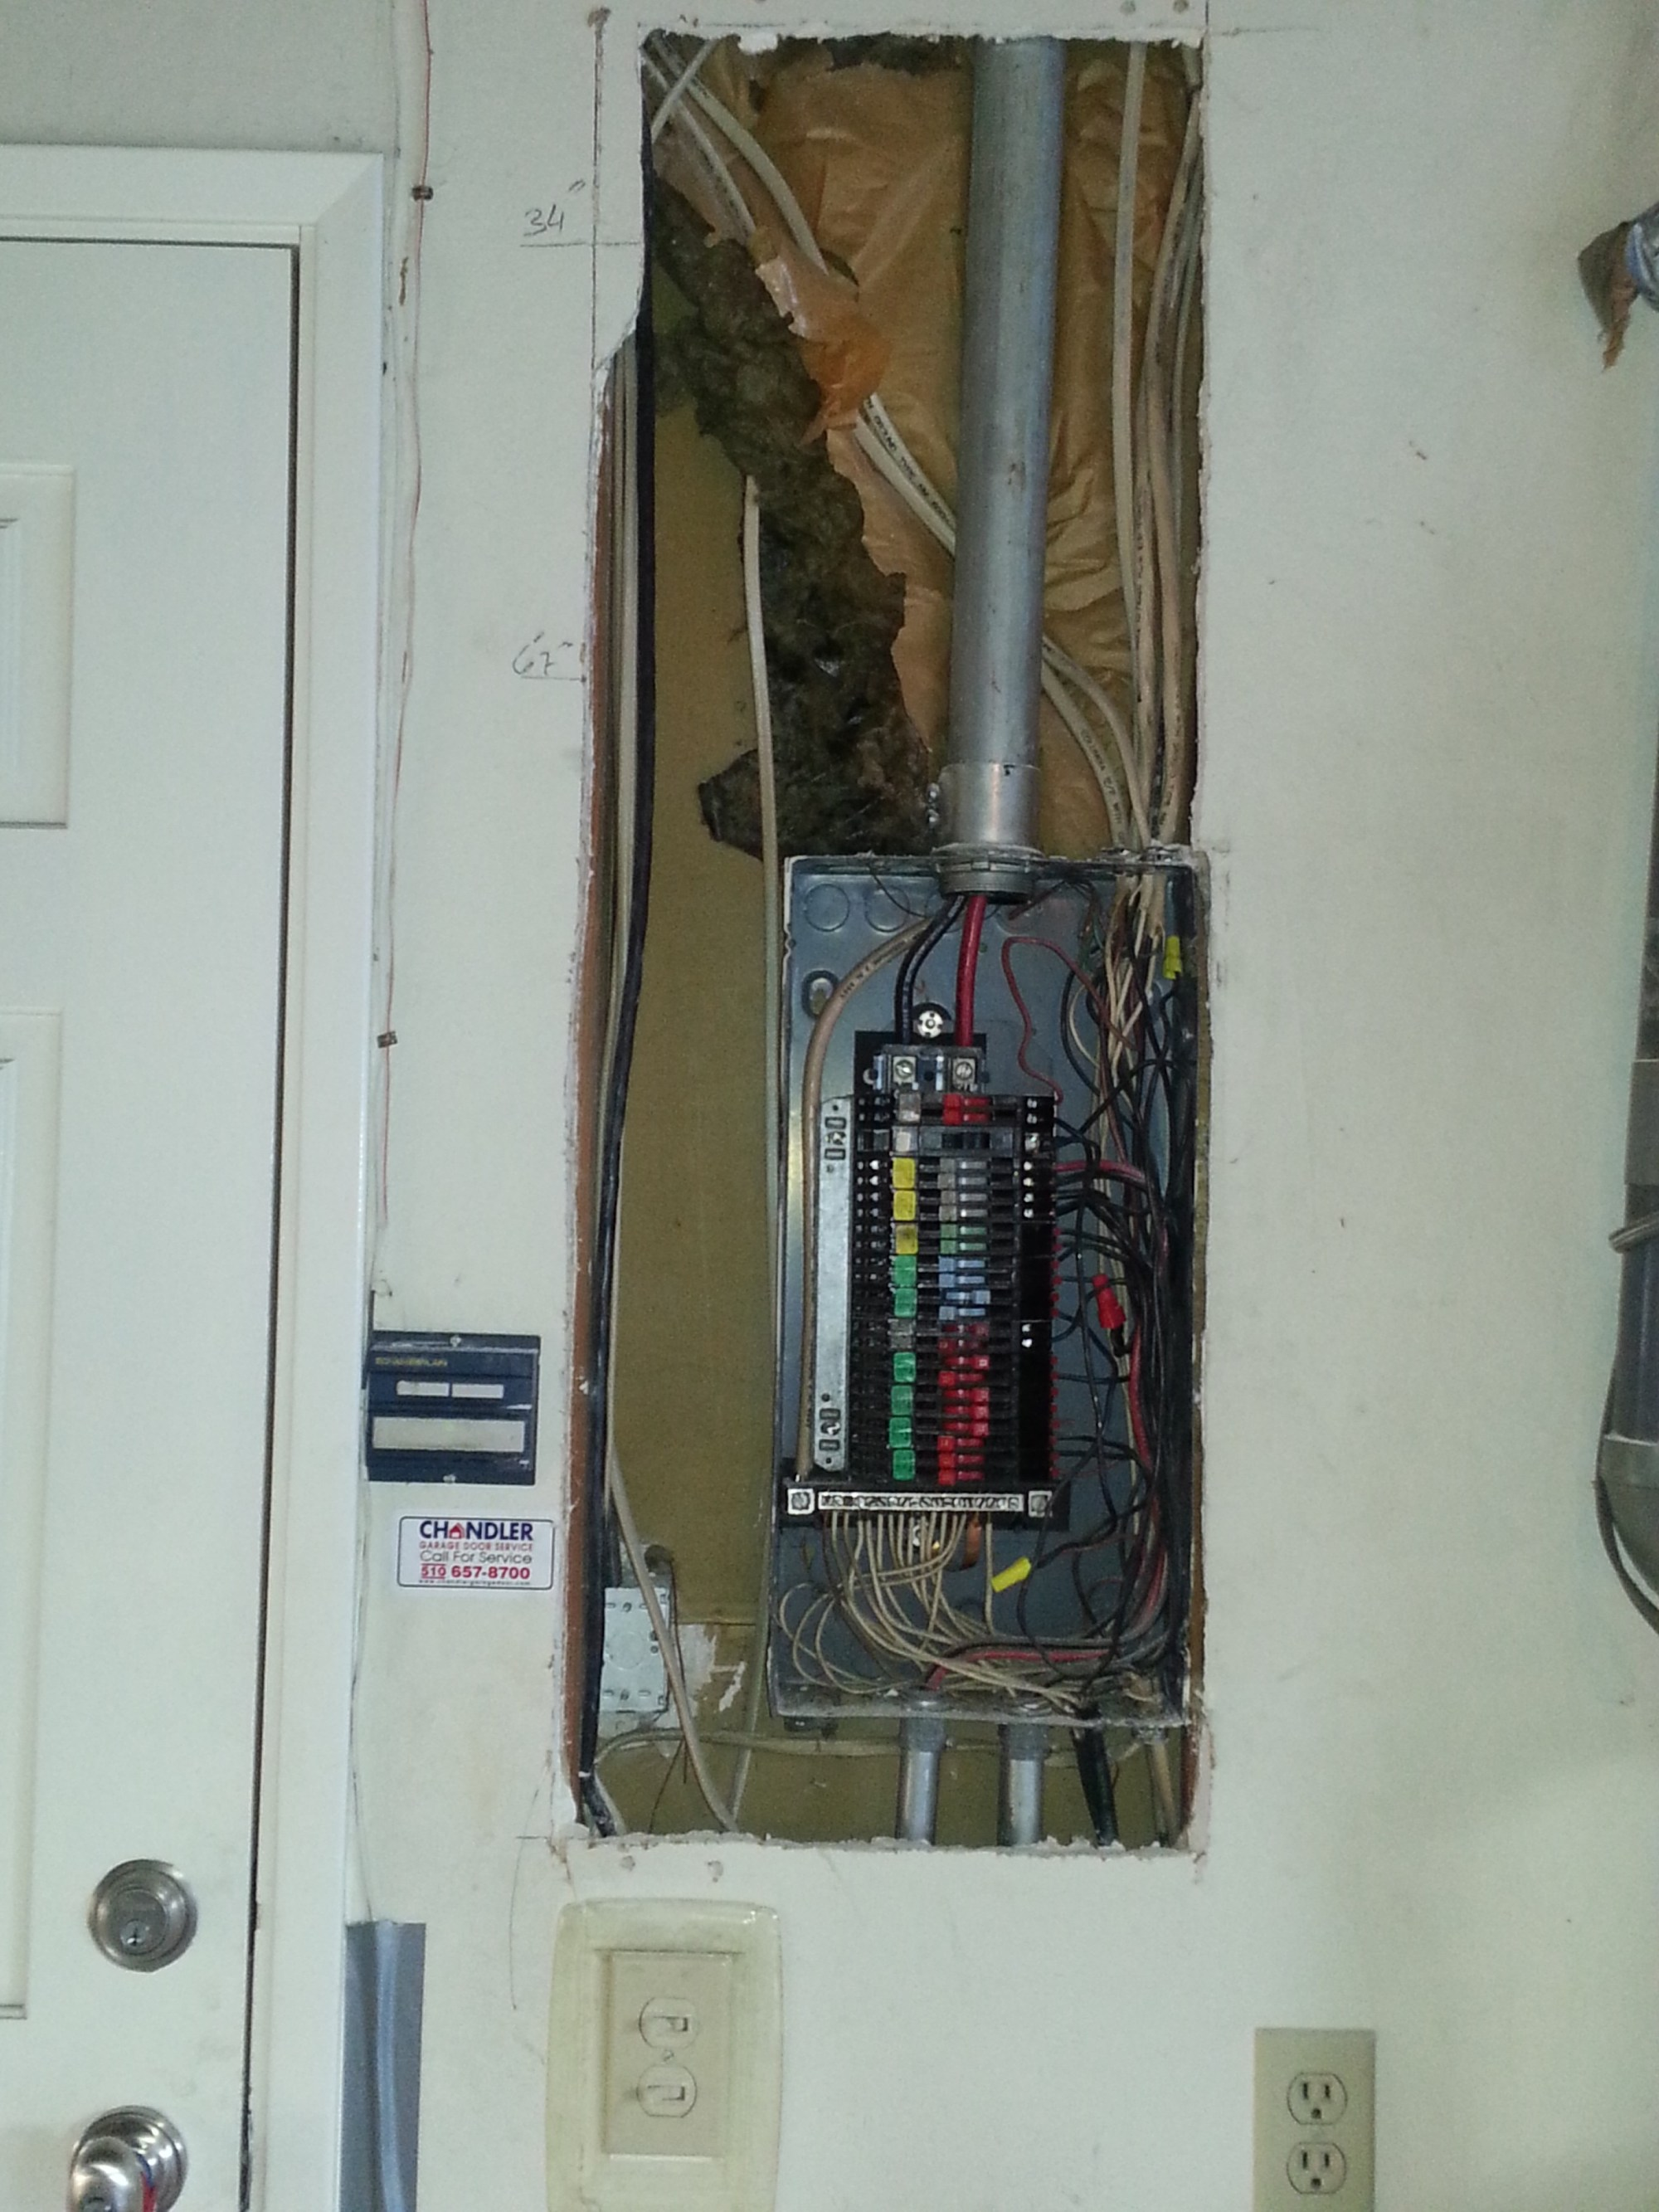 hight resolution of zinsco fire hazard panel to be replaced with 200amp rated square d panel in